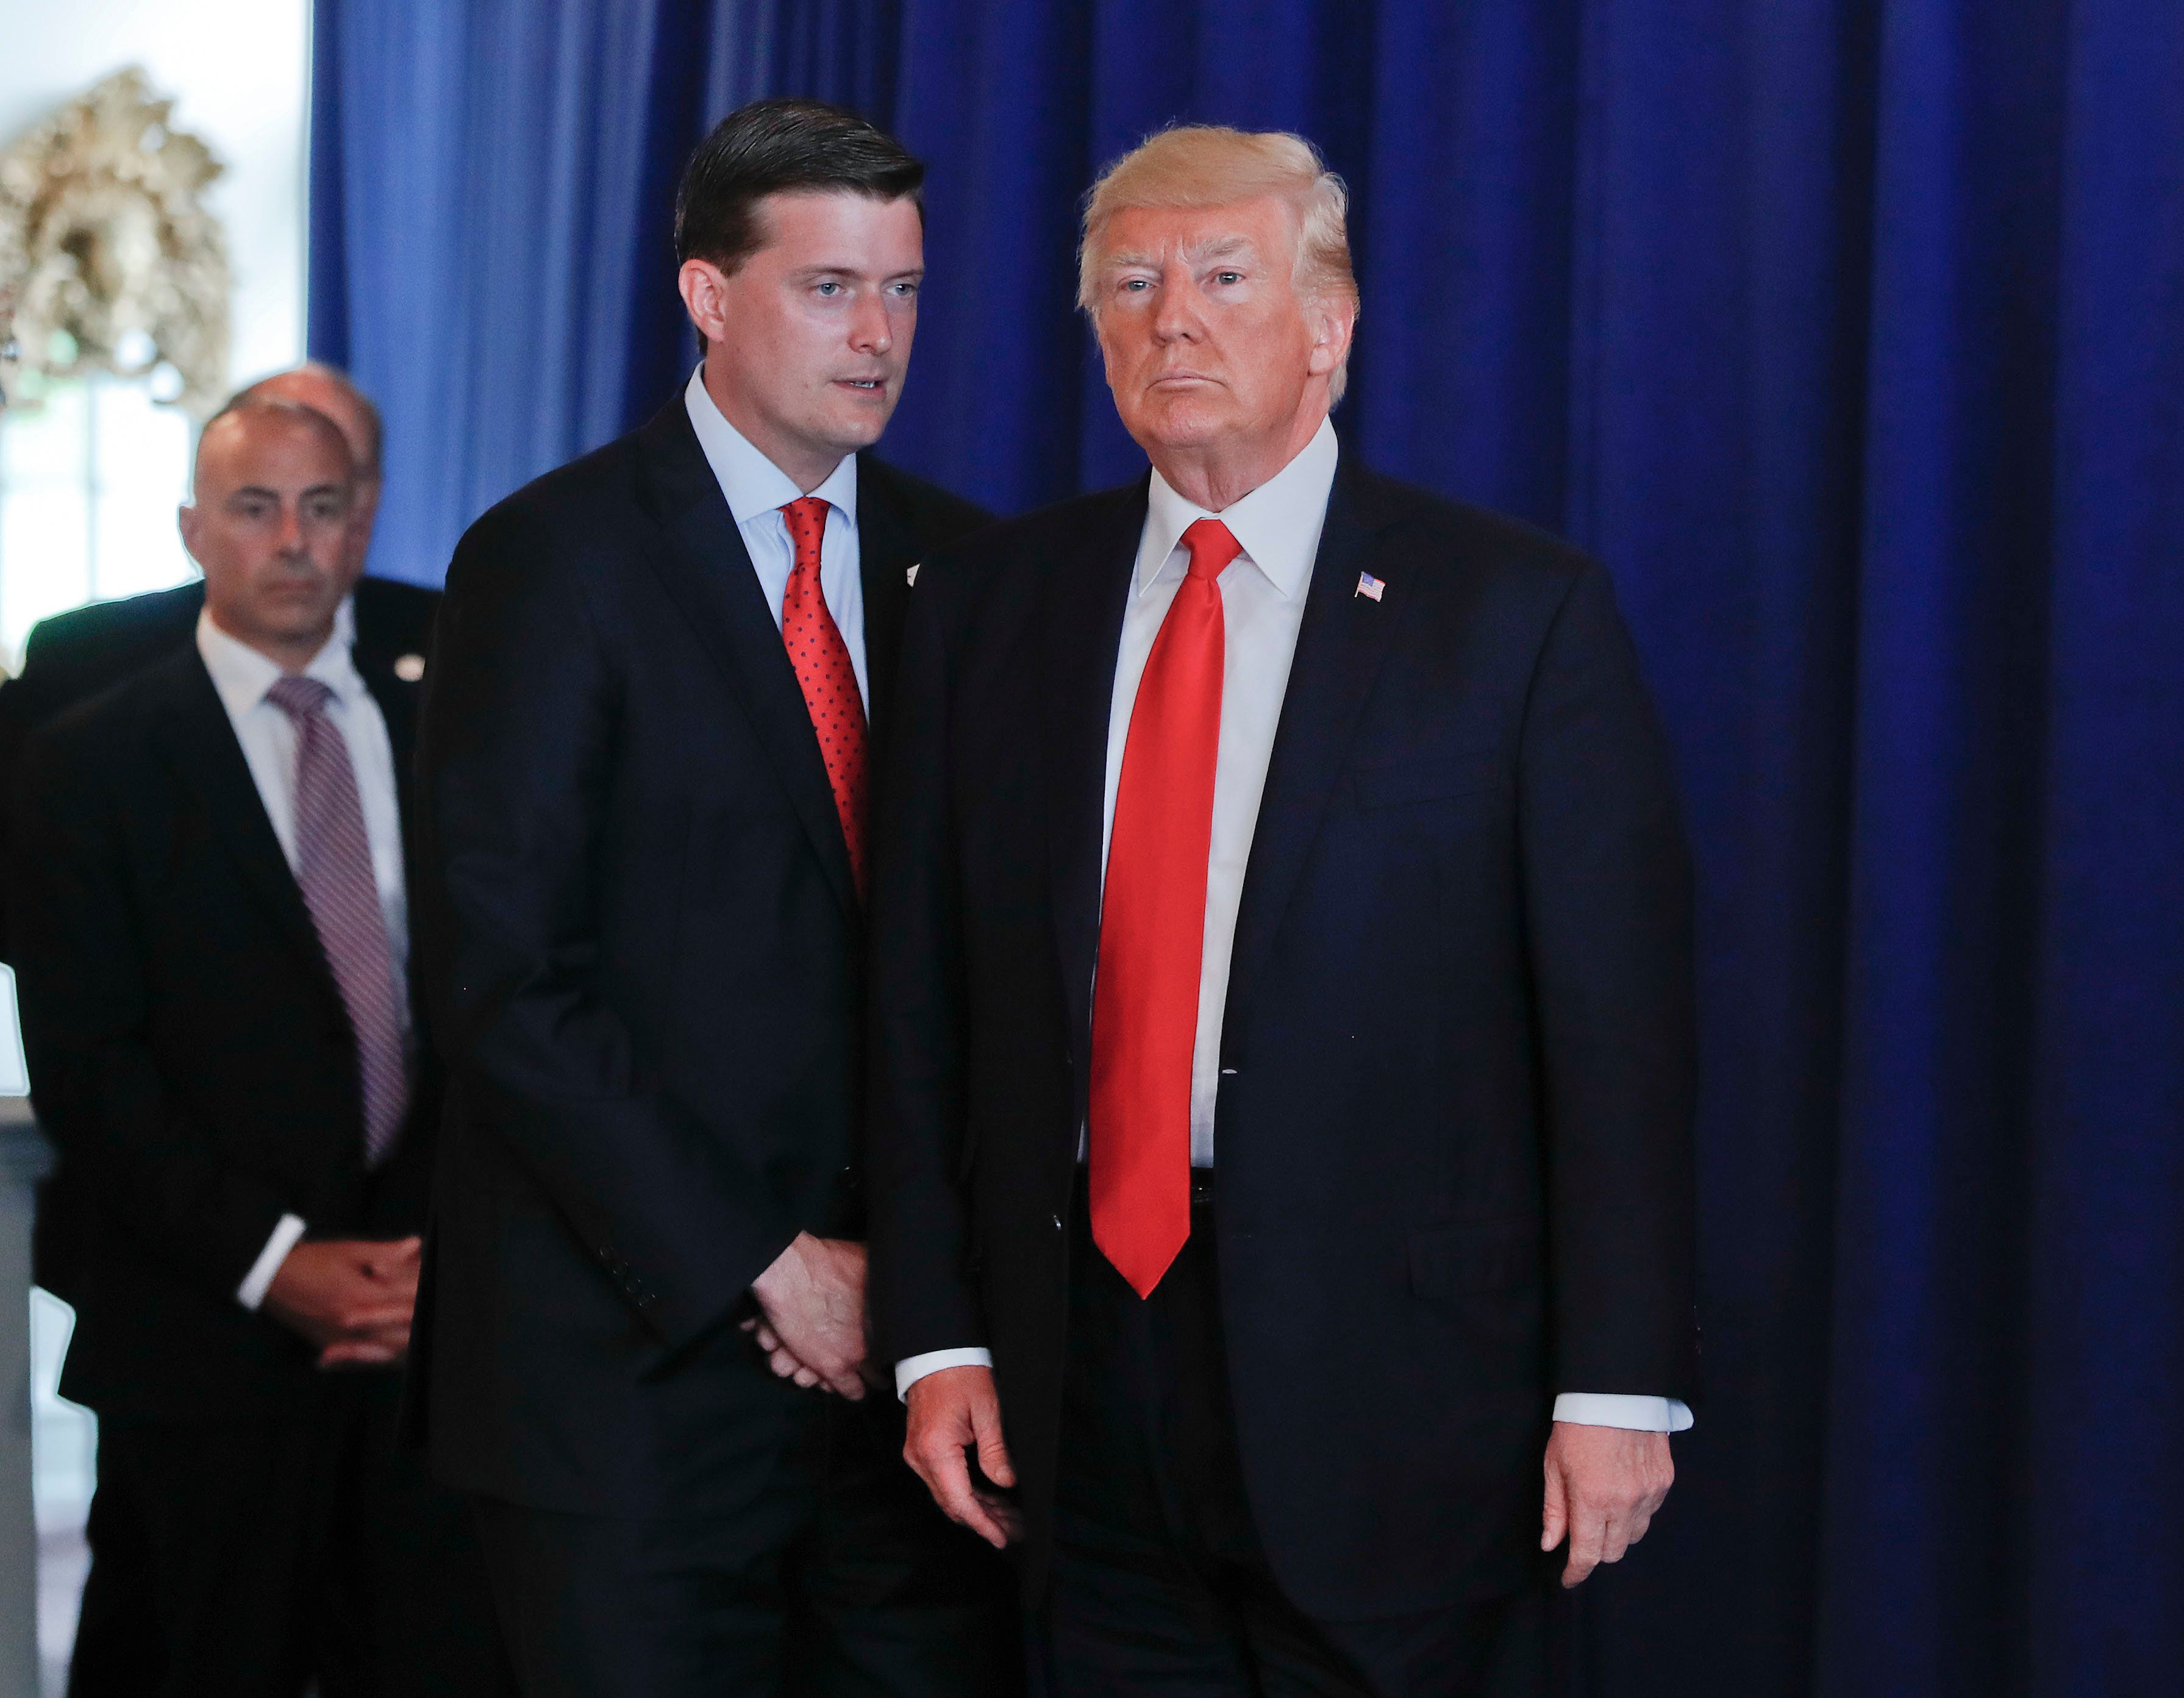 Former White House aide Rob Porter, who resigned after allegations of domestic abuse, with President Donald Trump in 2017.